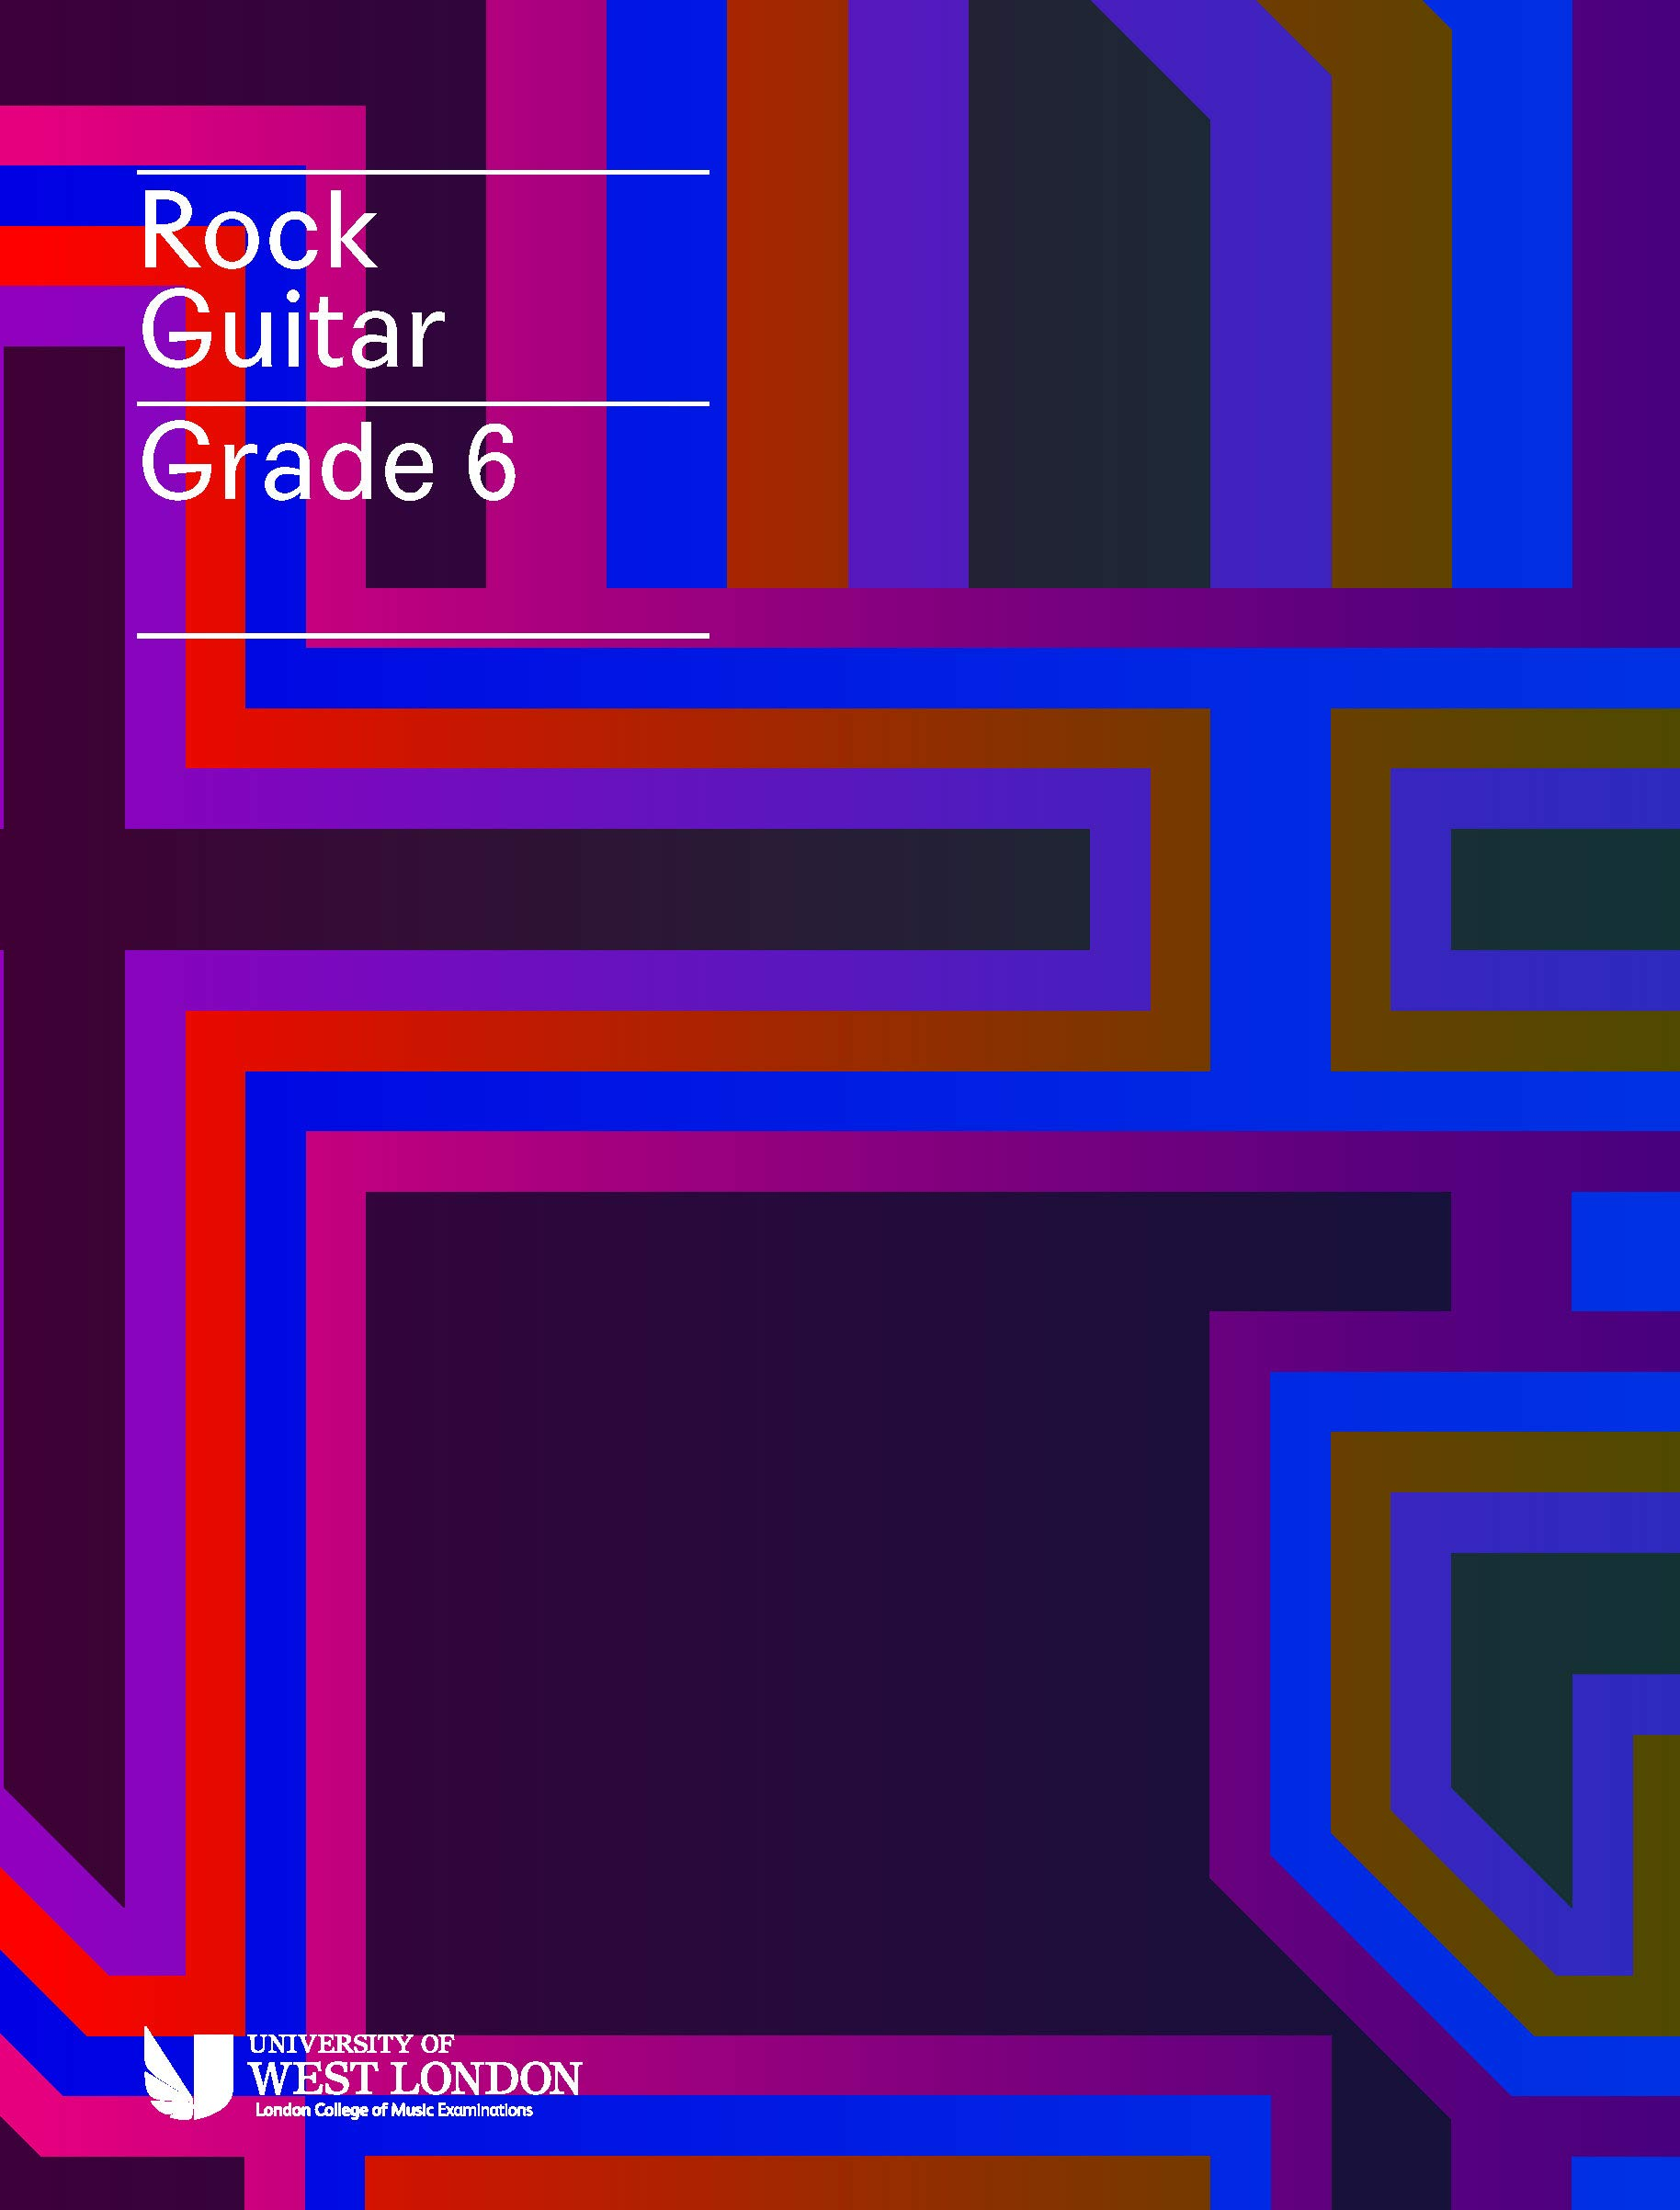 Electric Guitar Grade 6 London College of Music Exam Book from 2019 LCM Exams